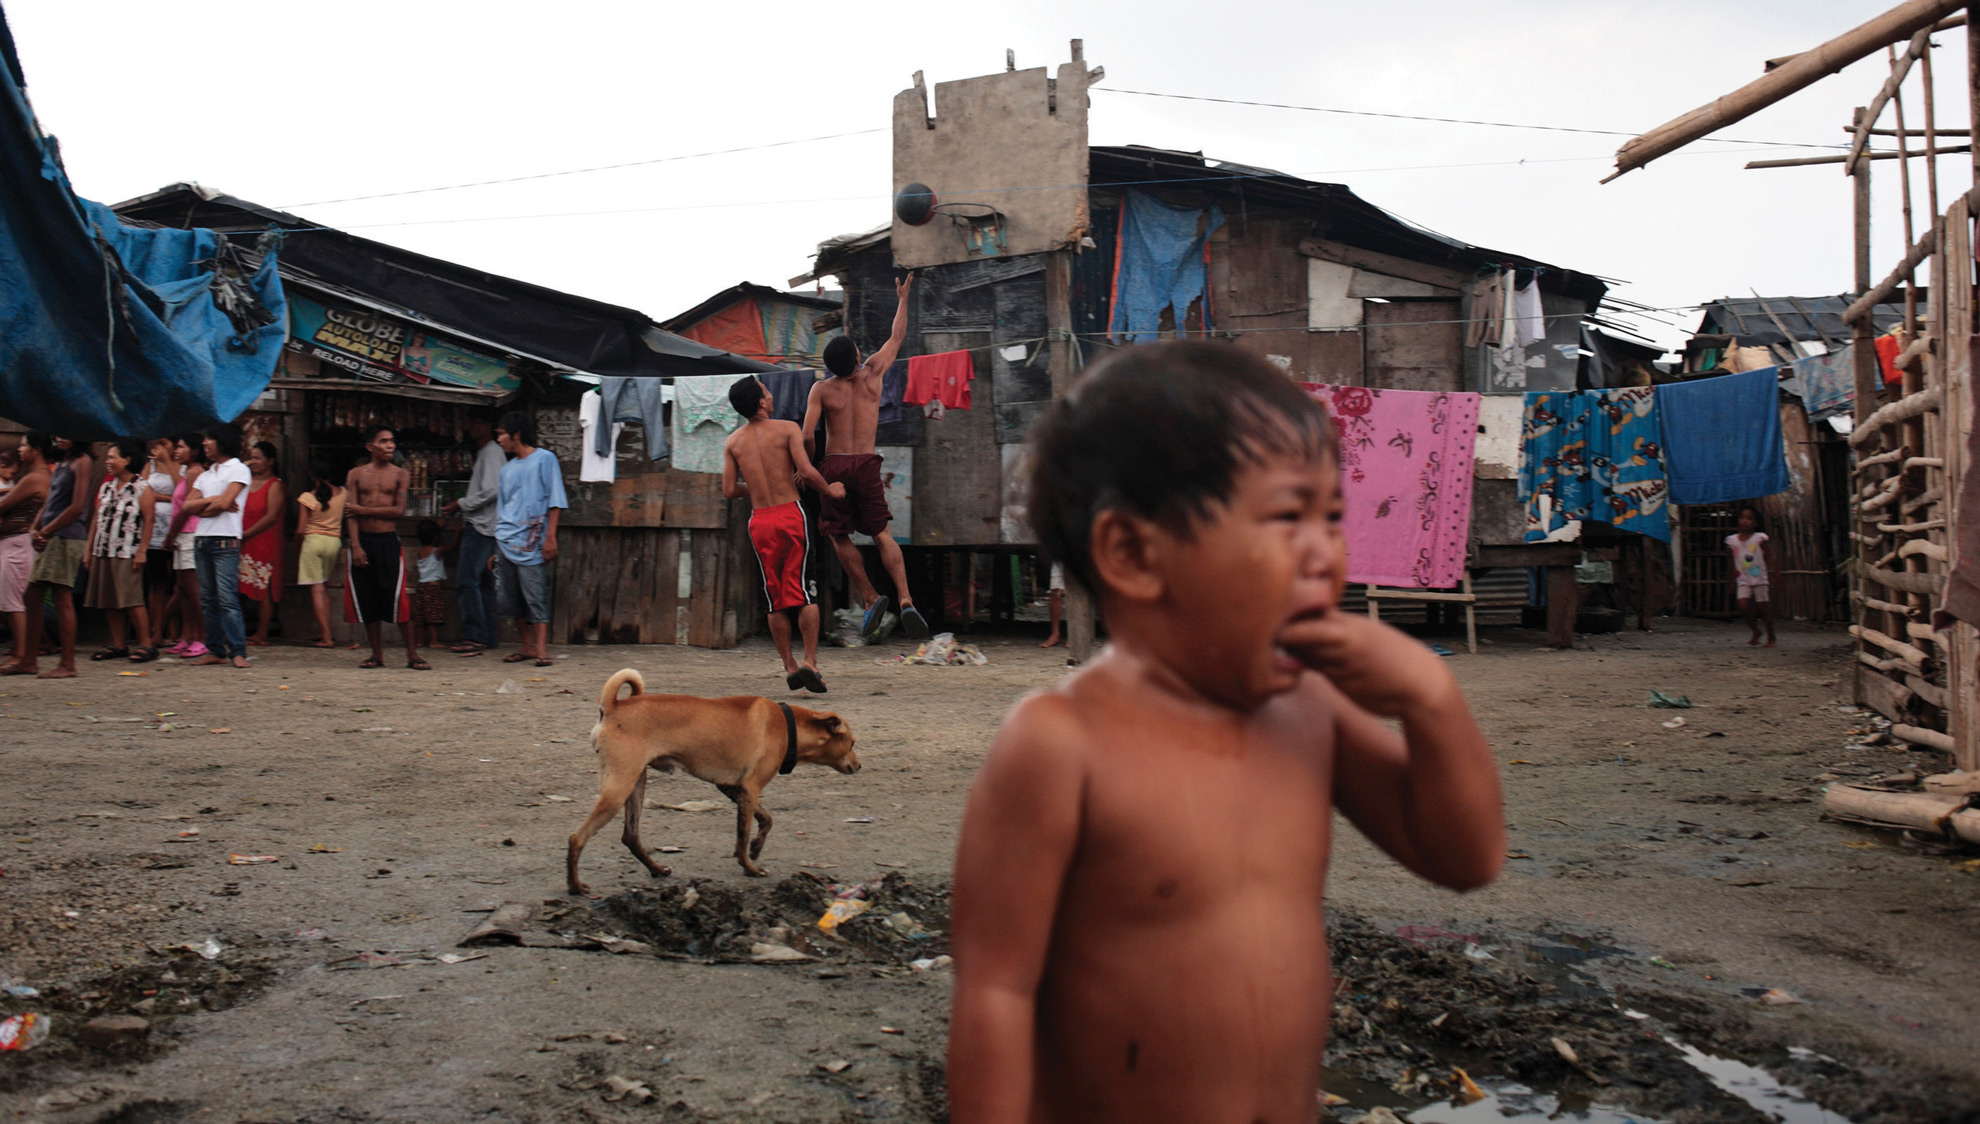 Life in Baseco, Manila, an area which provides easy pickings for kidney hunters.